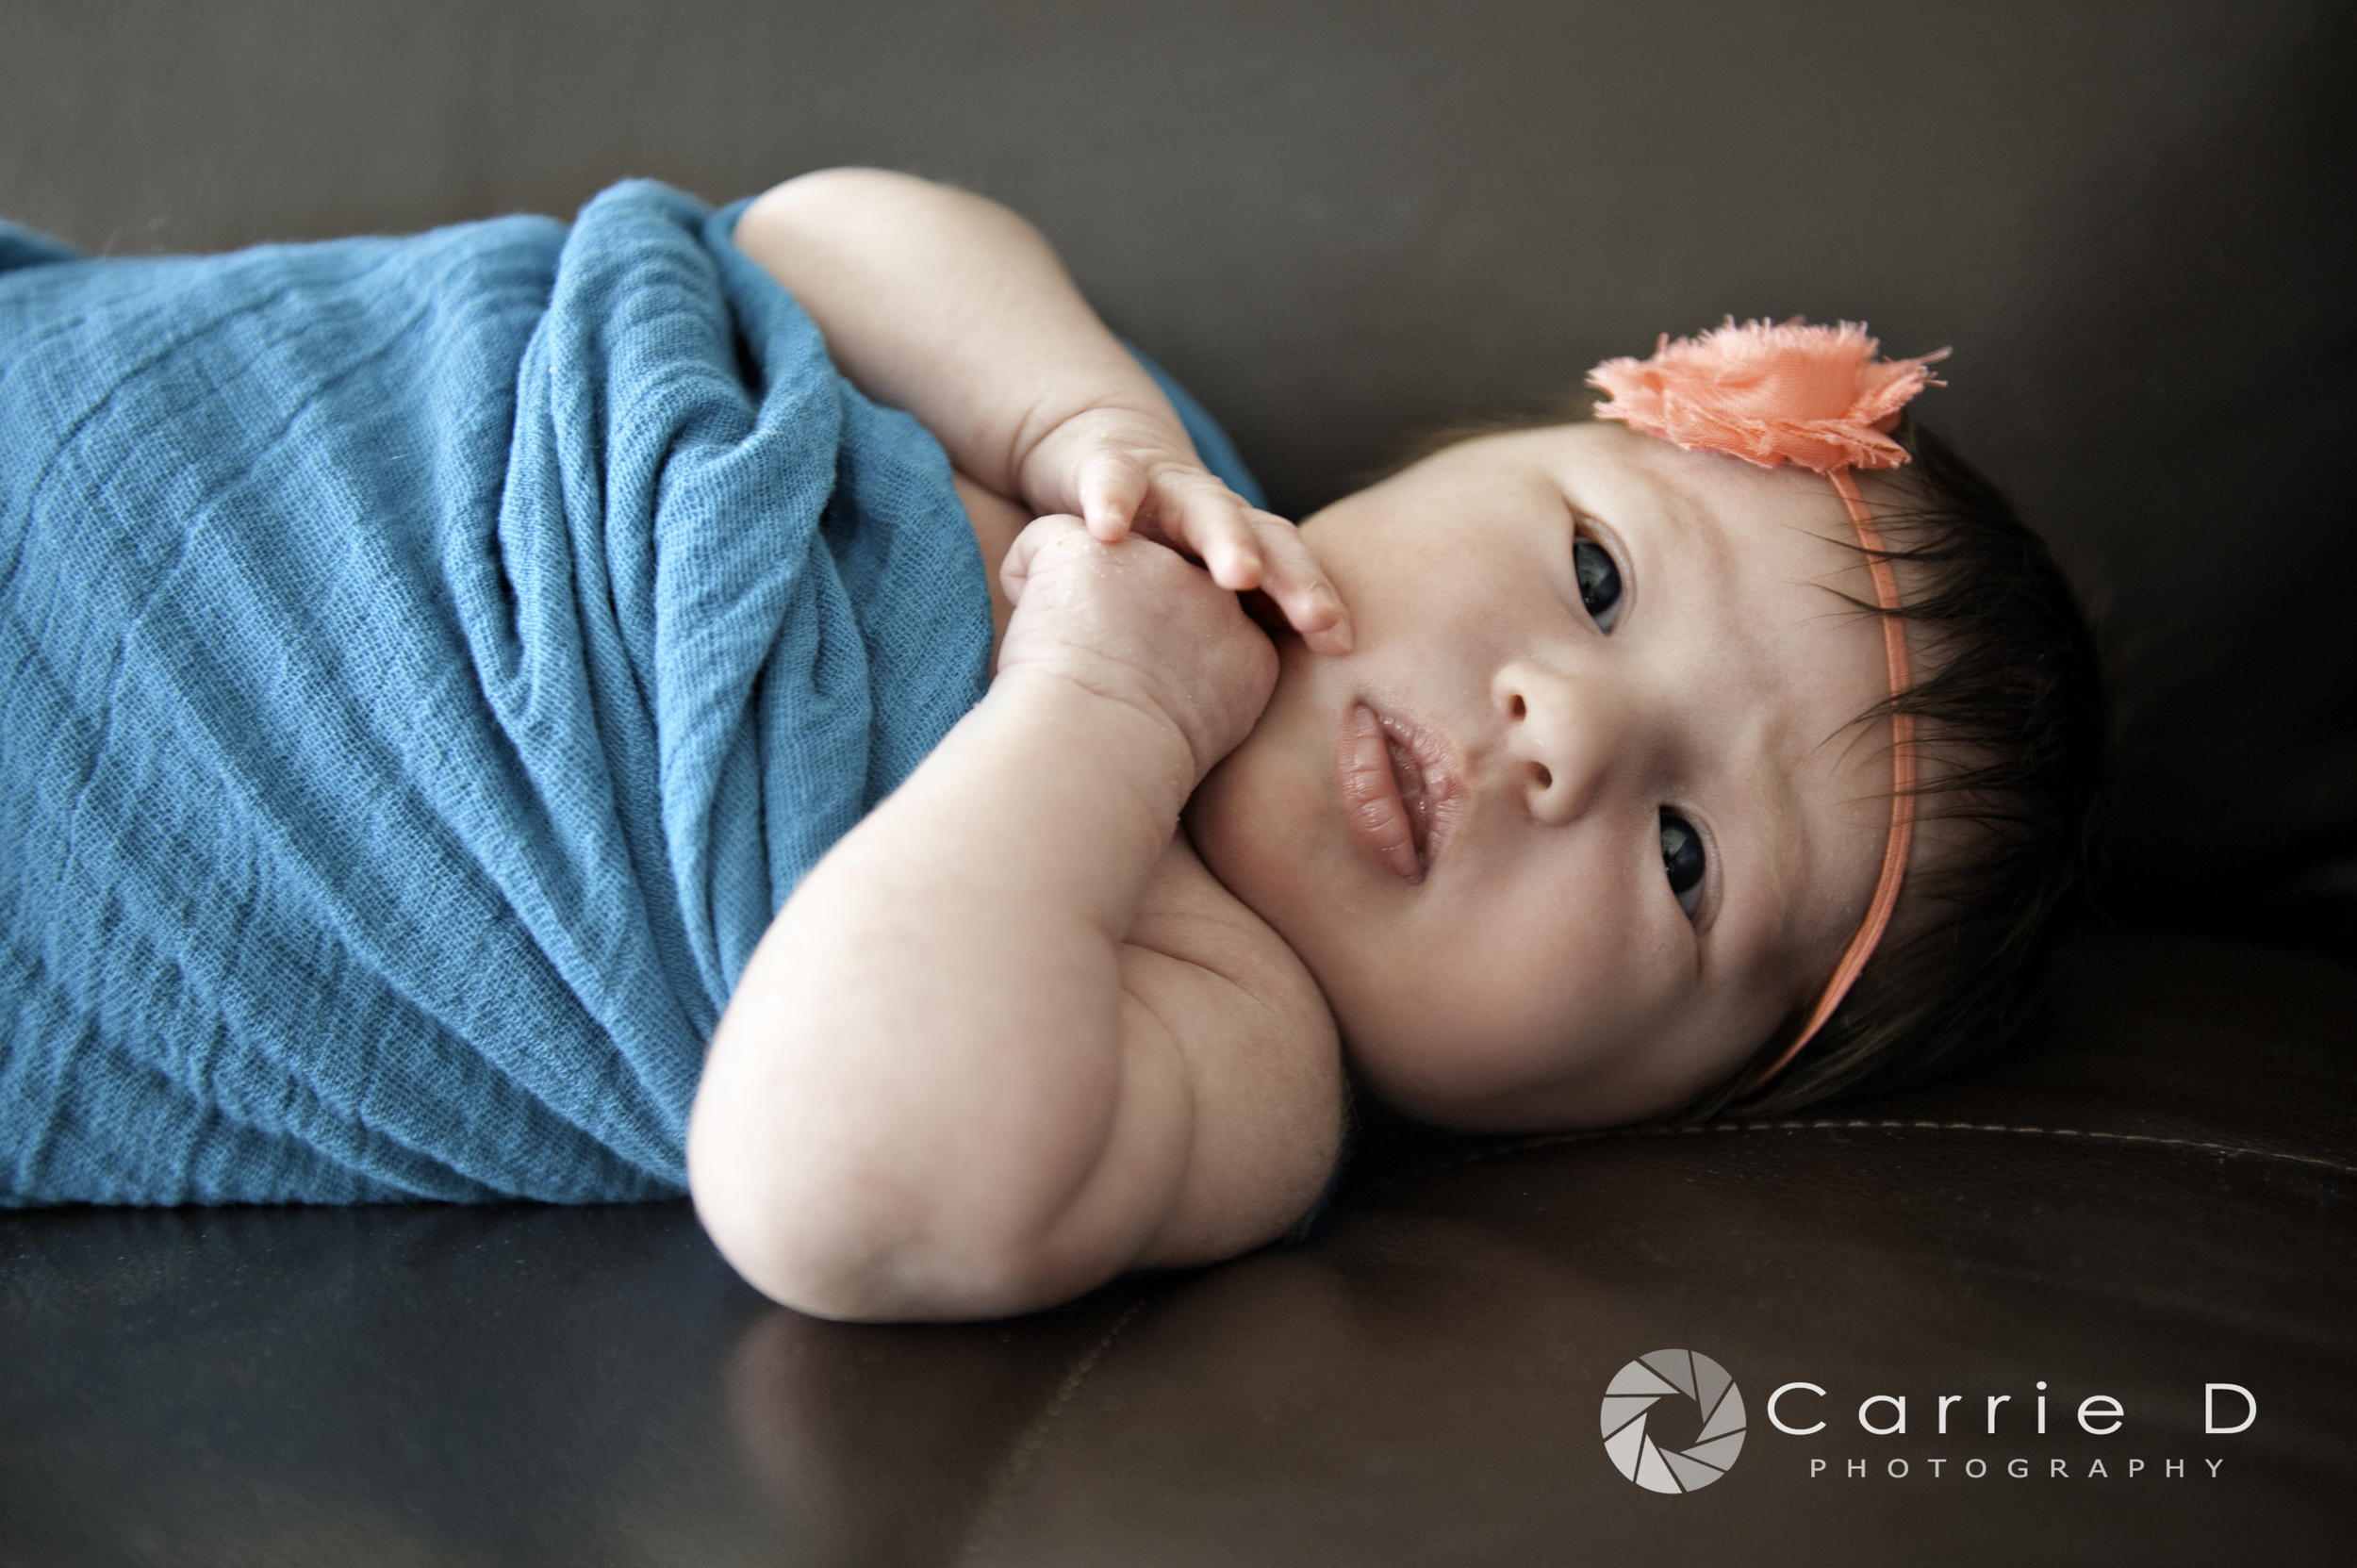 Northern Virginia Photographer – Northern Virginia Portrait Photographer – Northern Virginia Family Photographer - Northern Virginia Newborn Photographer – Northern Virginia Infant Photographer – Northern Virginia Sibling Photographer – Northern Virginia Natural Light Photographer – Northern Virginia Lifestyle Photographer – Northern Virginia Natural Light Portrait - Maryland Photographer – Maryland Portrait Photographer – Maryland Family Photographer - Maryland Newborn Photographer – Maryland Infant Photographer – Maryland Sibling Photographer – Maryland Natural Light Photographer – Maryland Lifestyle Photographer – Maryland Natural Light Portrait -Wynne_DSC_6465B